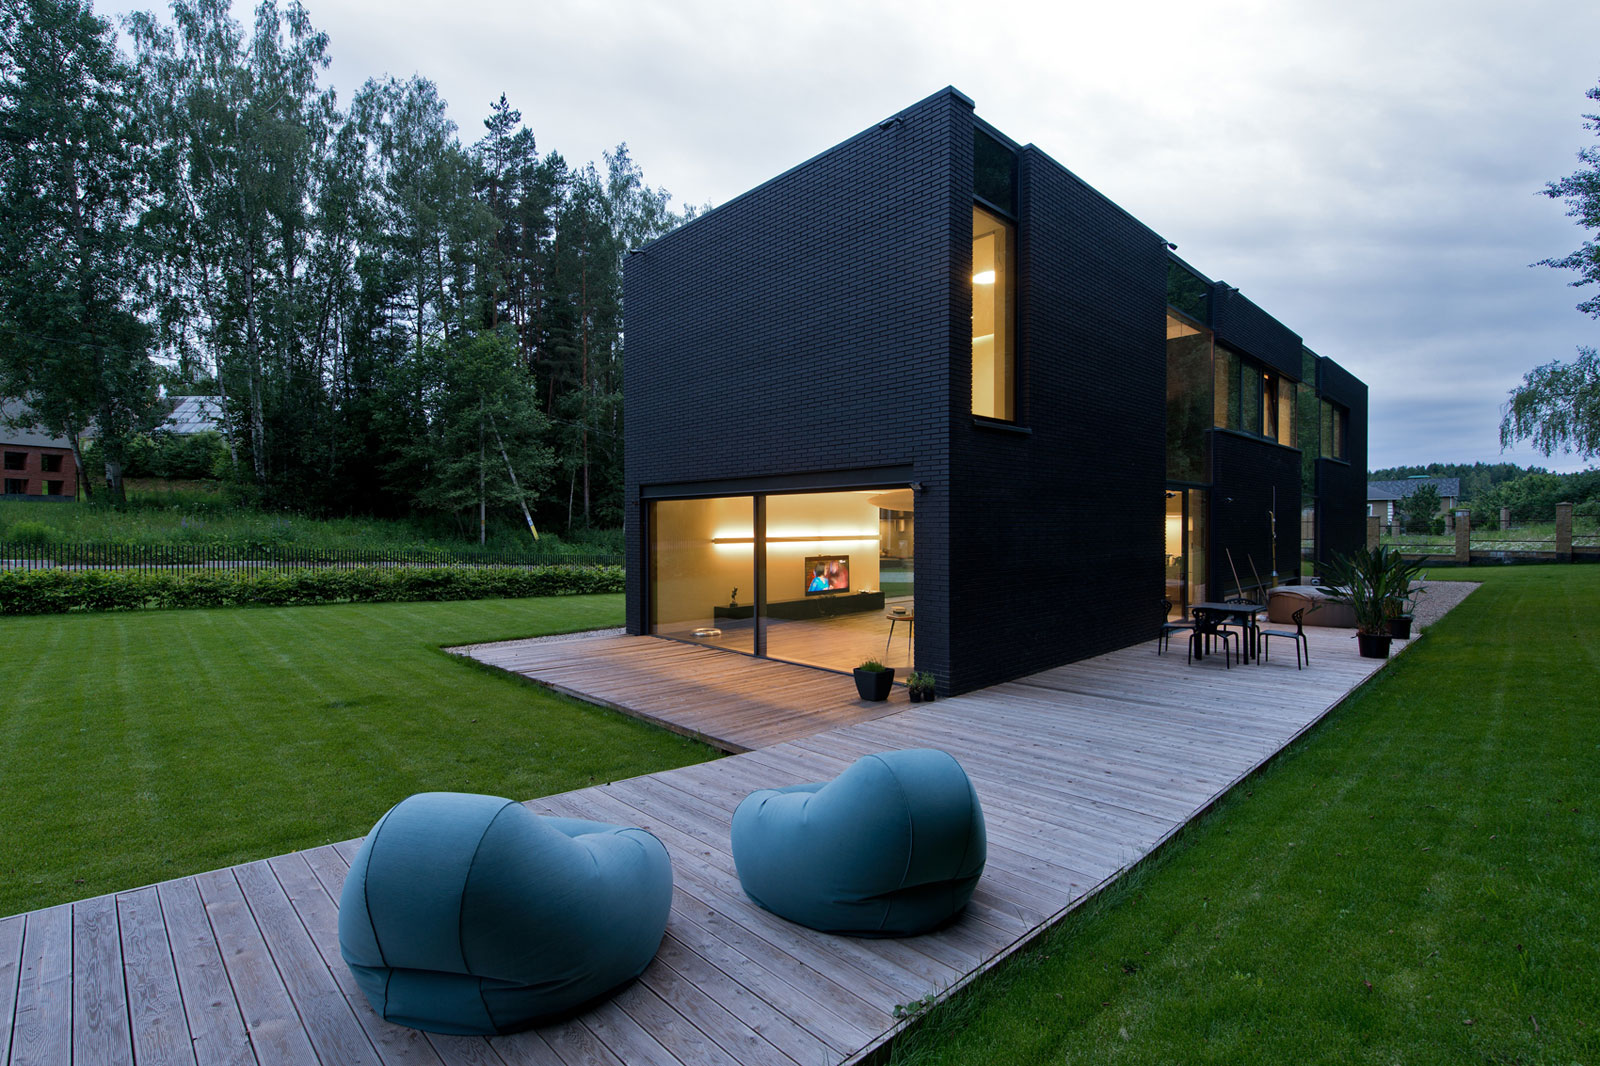 Black Boxed Family House in Minsk by Architectural Bureau G. Natkevicius & Partners-06